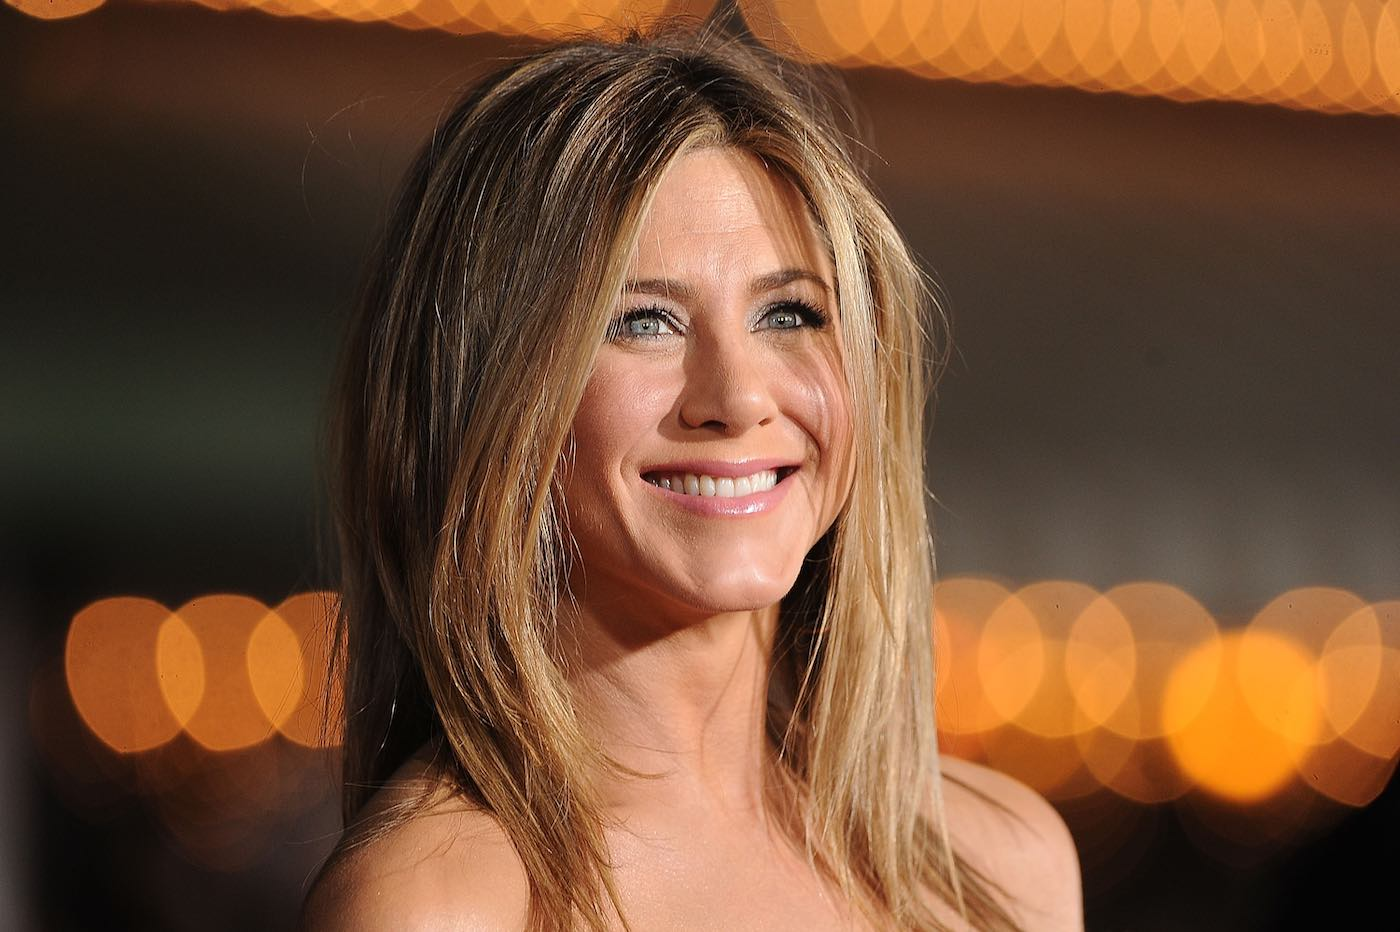 Thumbnail for Jennifer Aniston's 5 wellness habits that keep her looking ageless